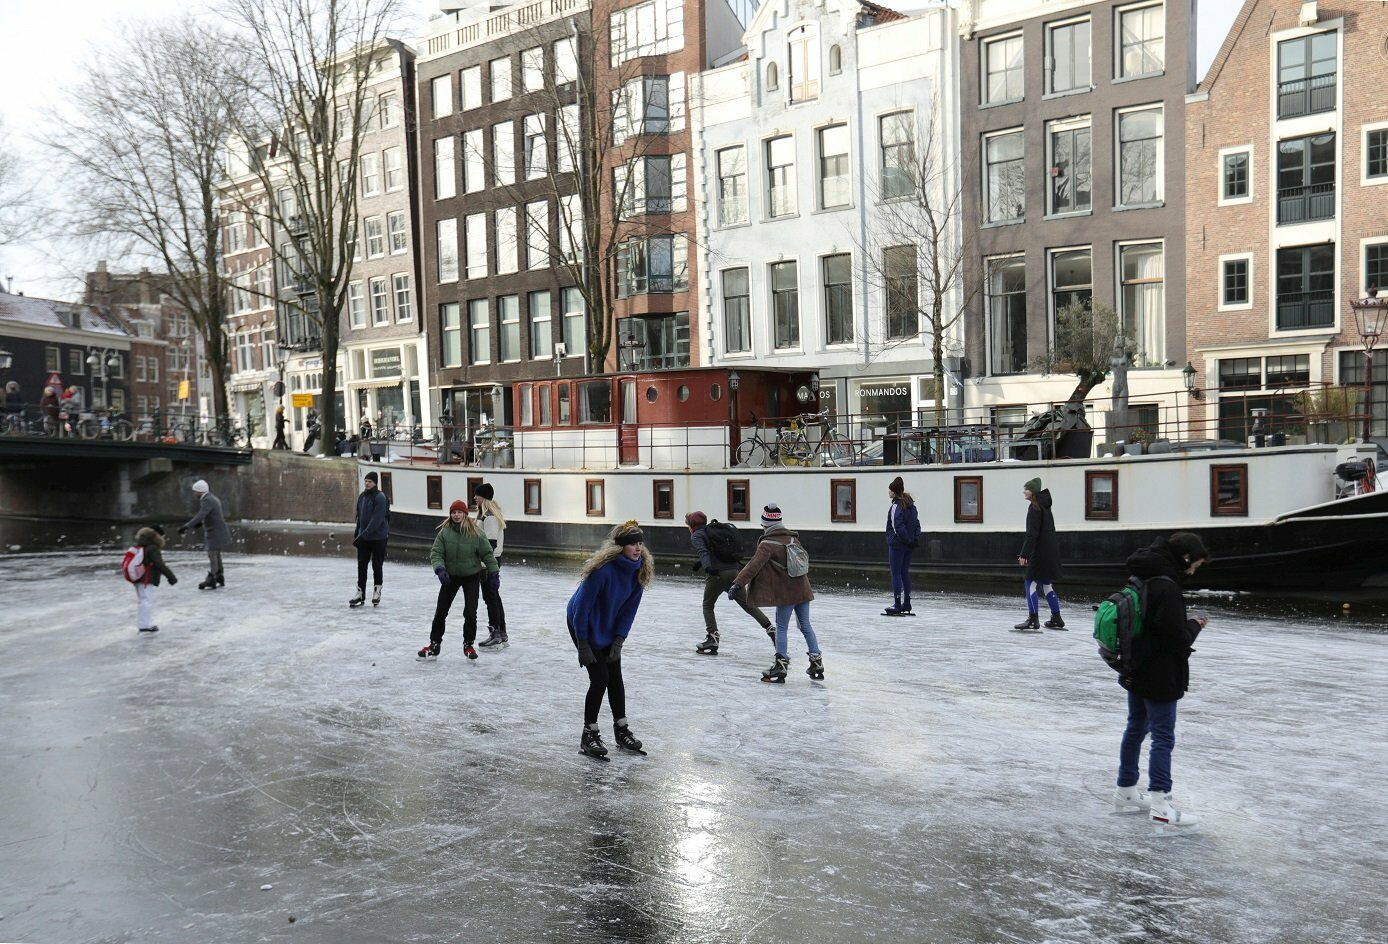 People ice skate during a cold snap across the country at the Prinsengracht in Amsterdam, Netherlands February 14, 2021.